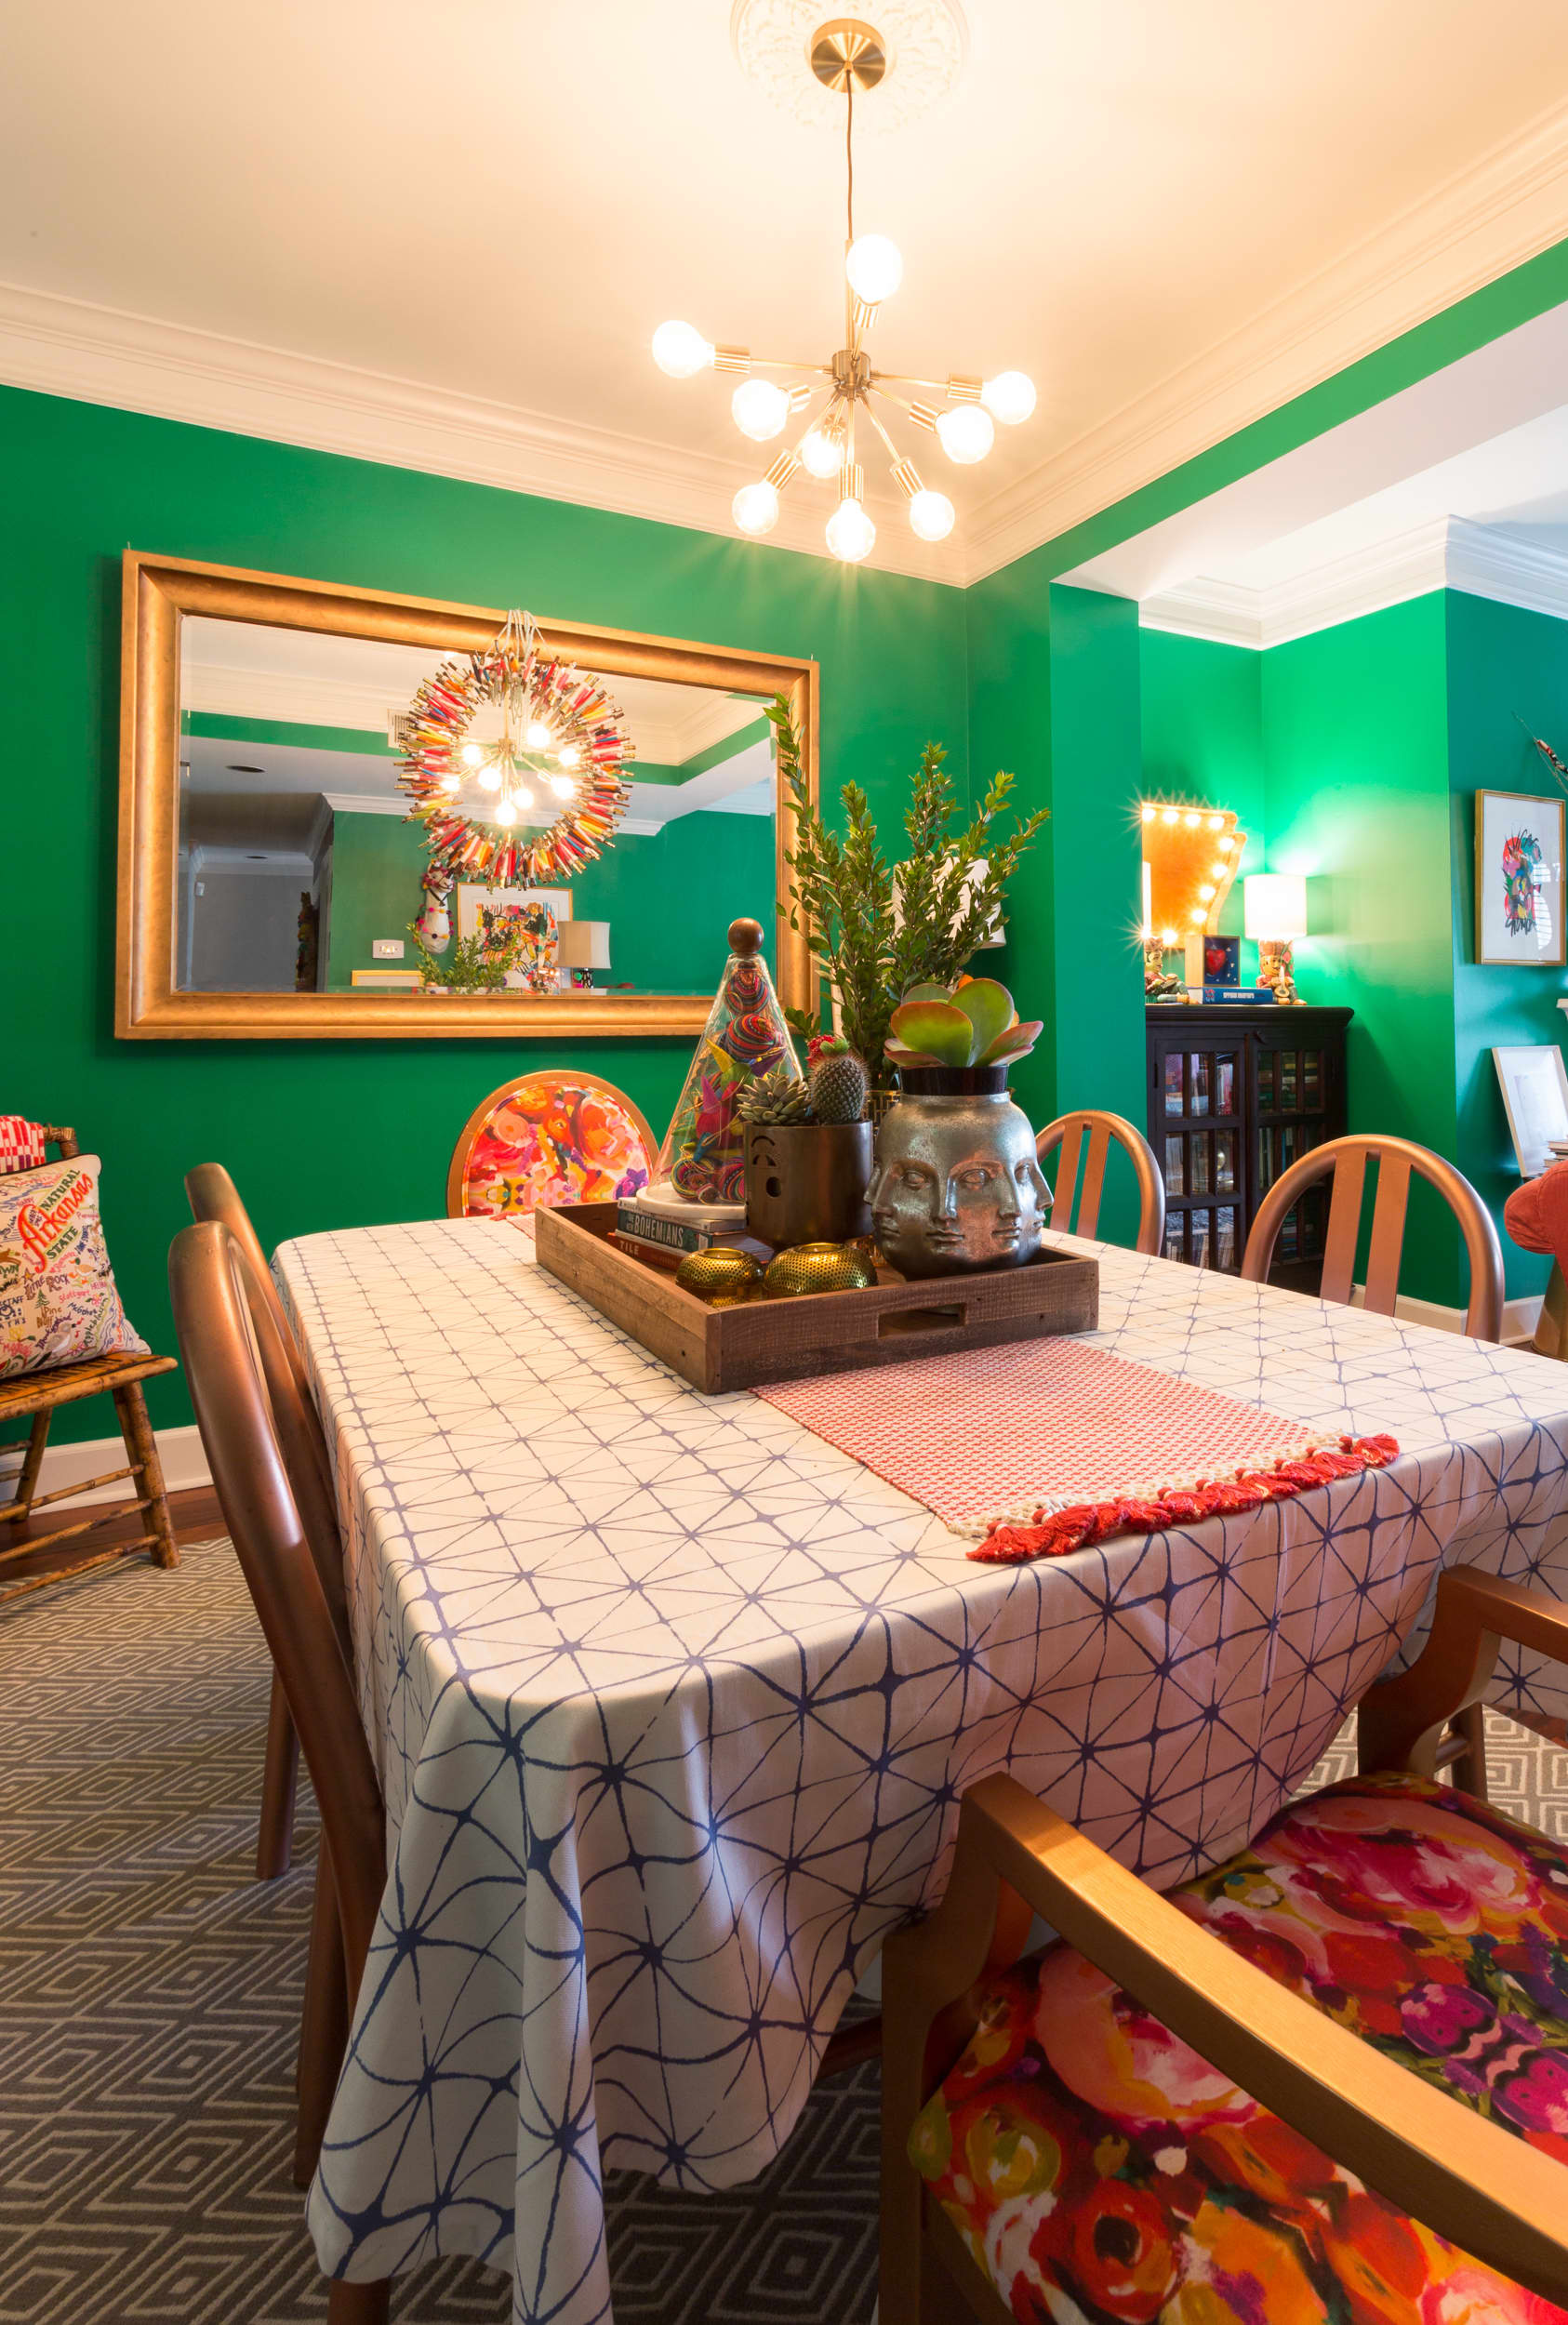 House Tour: A Colorful Nashville House | Apartment Therapy